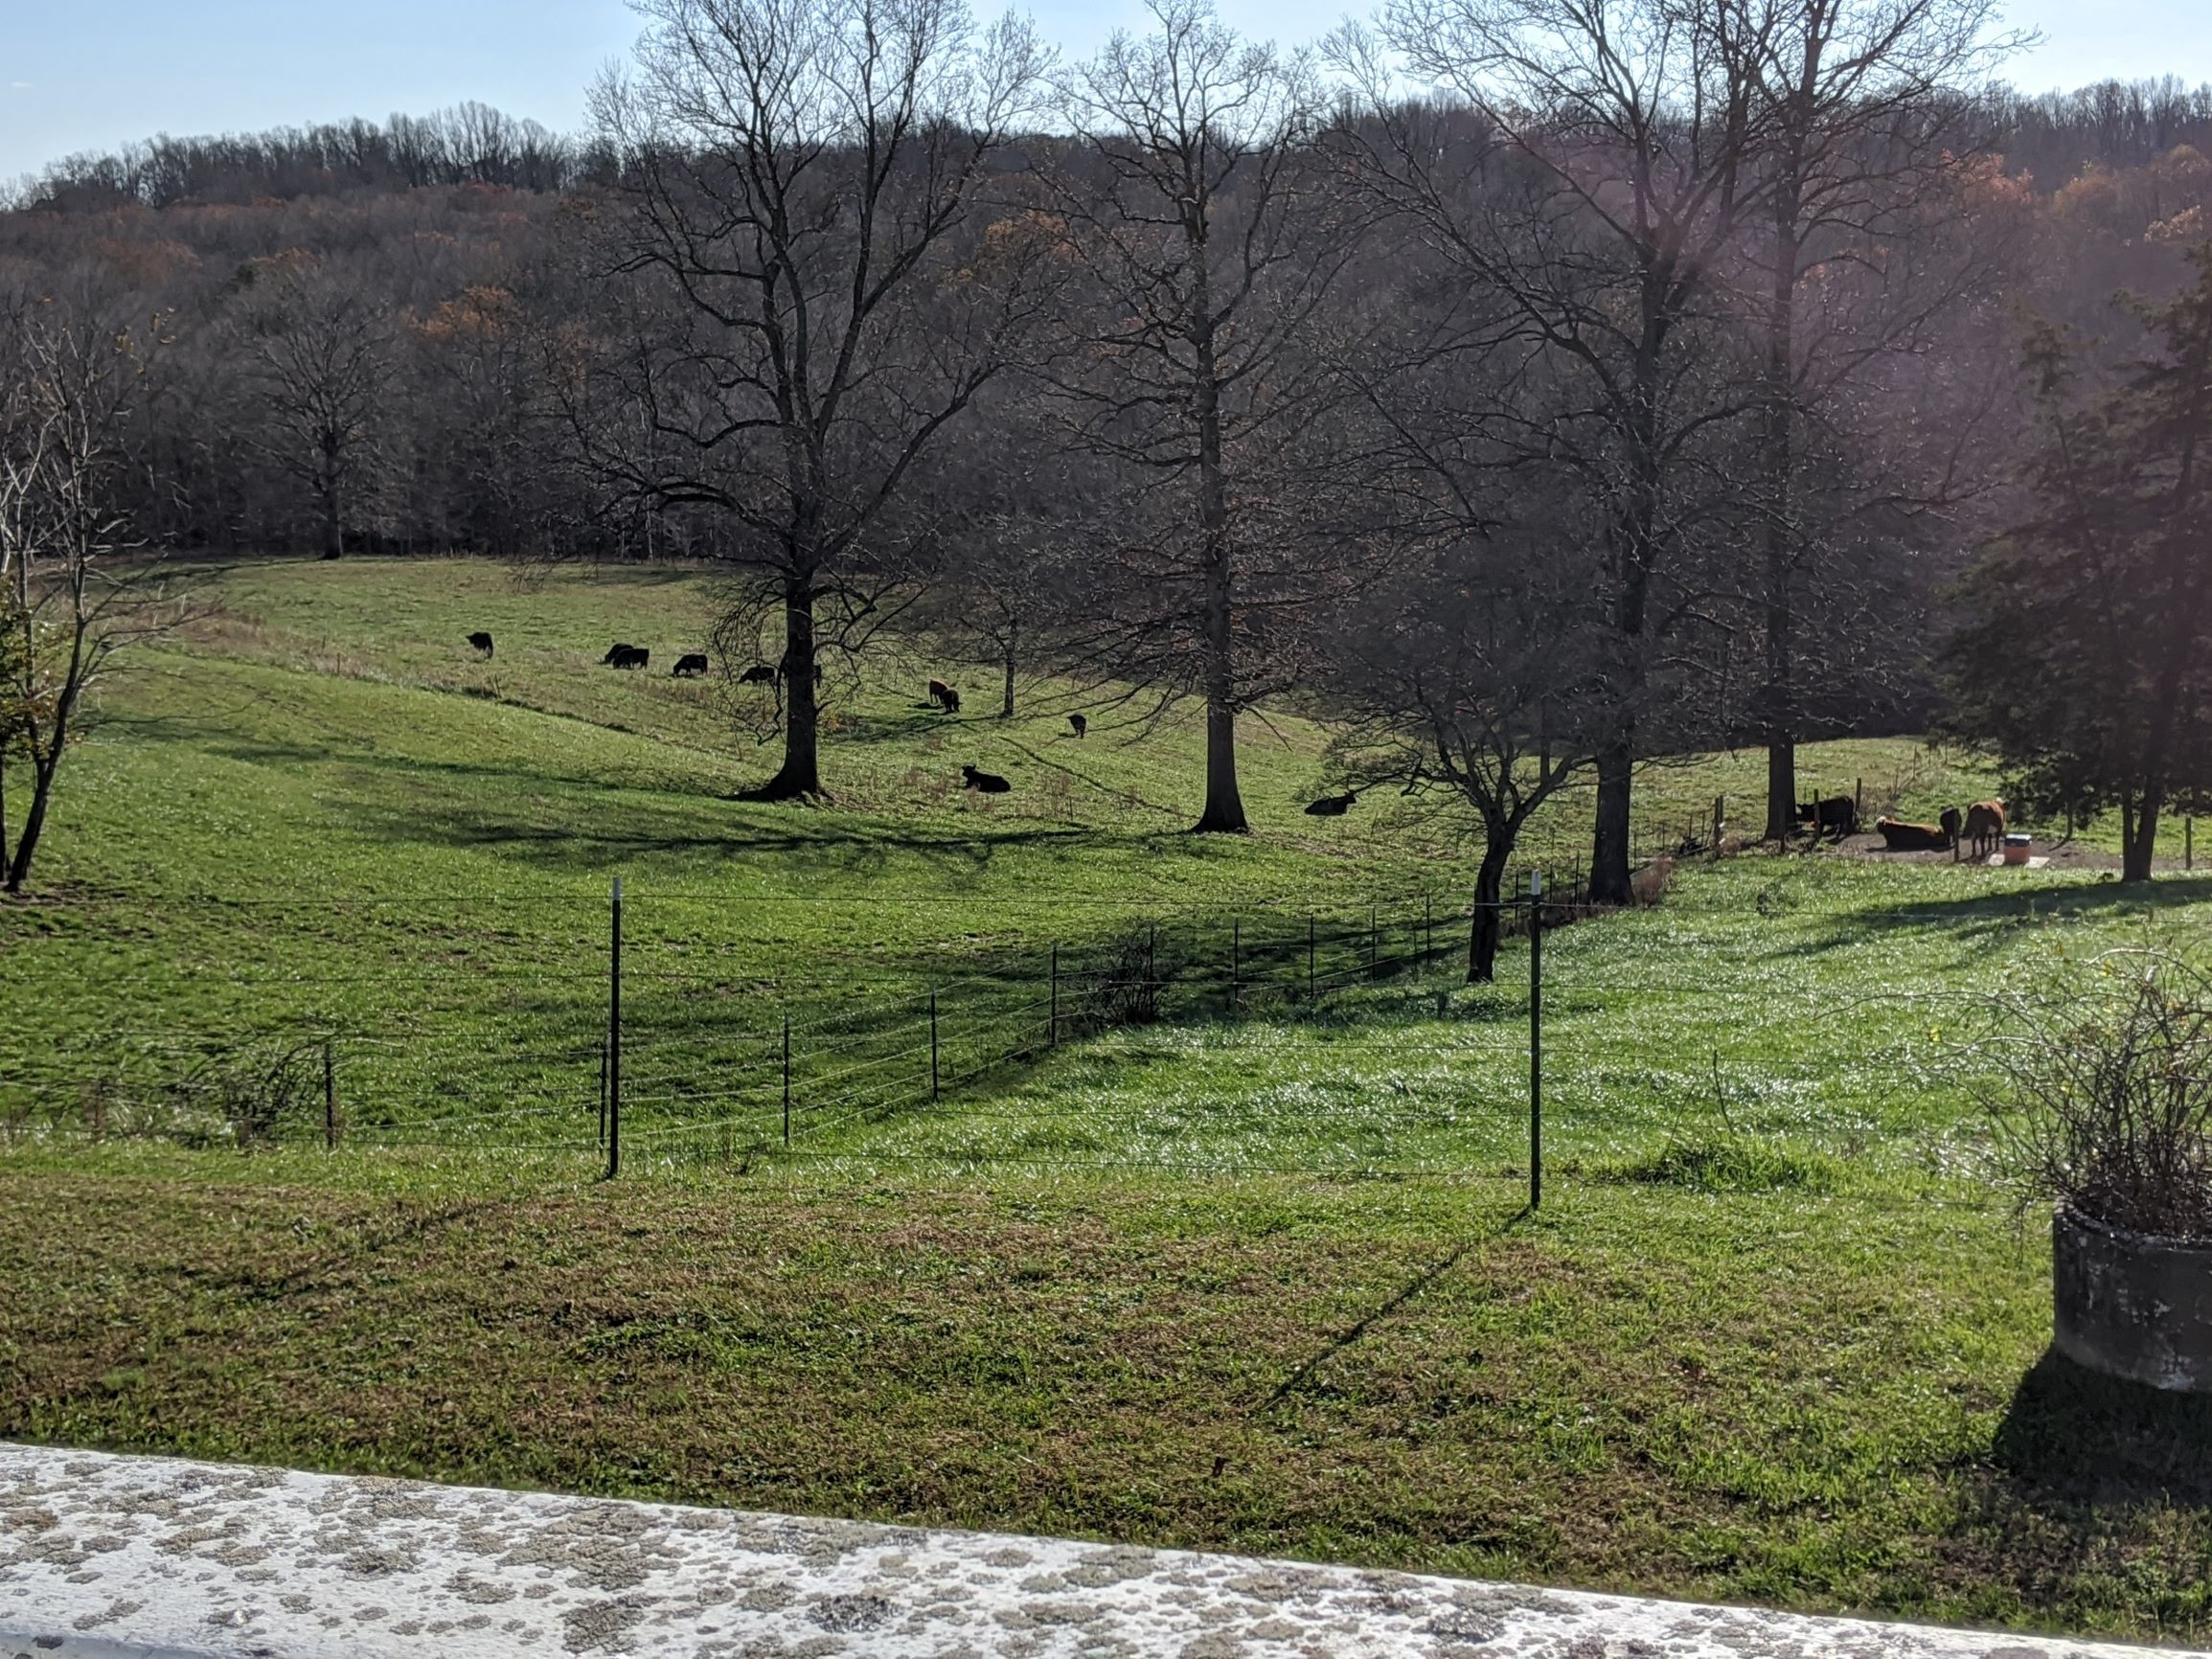 Looking out over the back pasture